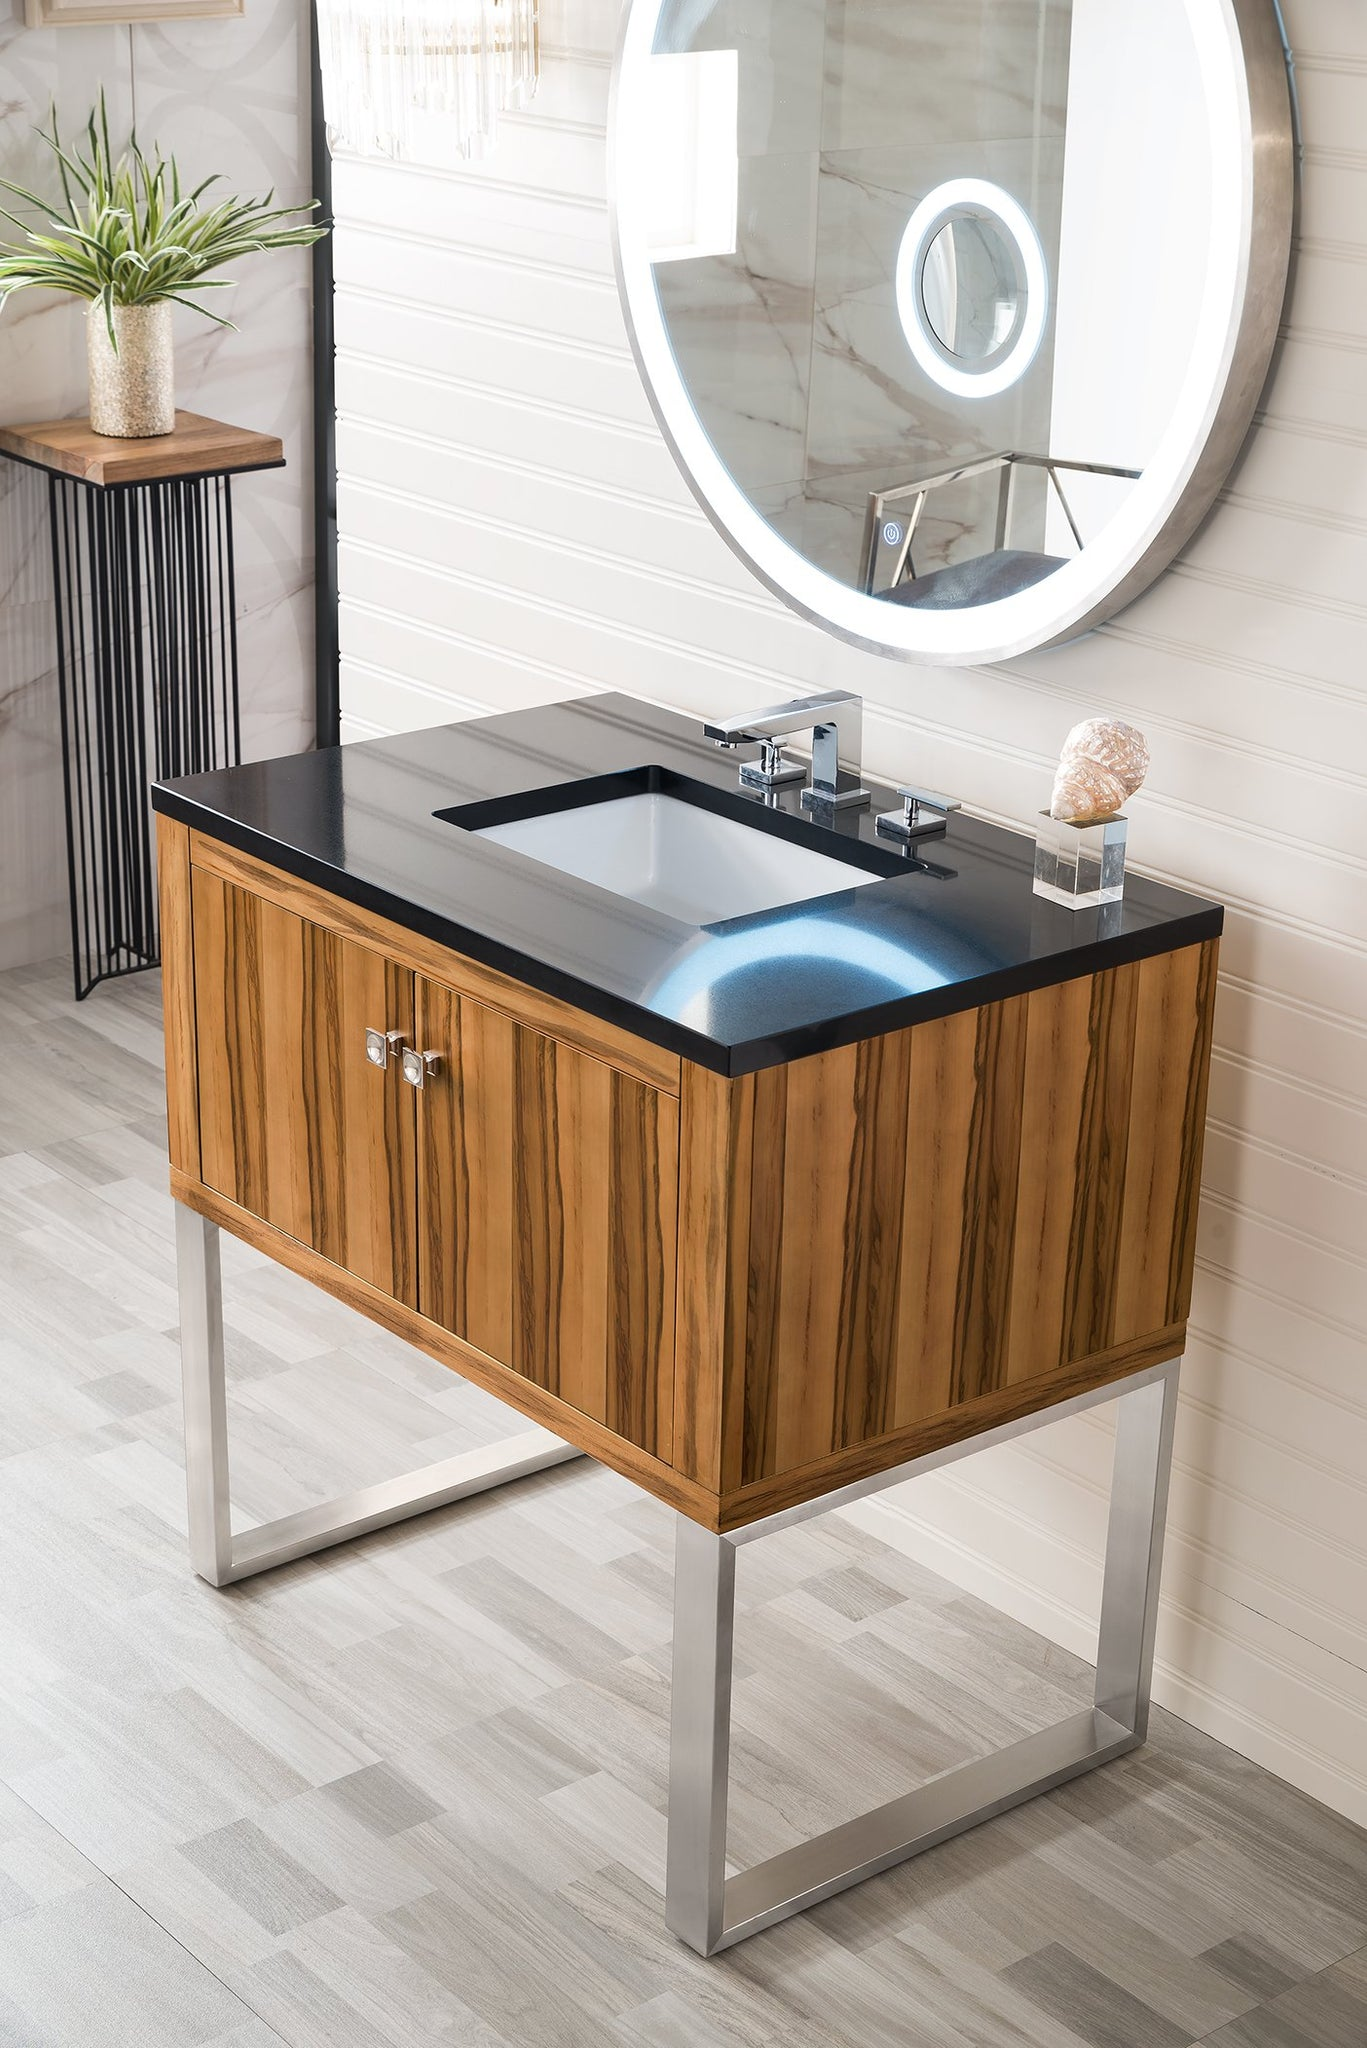 "Westlake 36"" Single Vanity, Natural Applewood Single Bathroom Vanity James Martin Vanities"